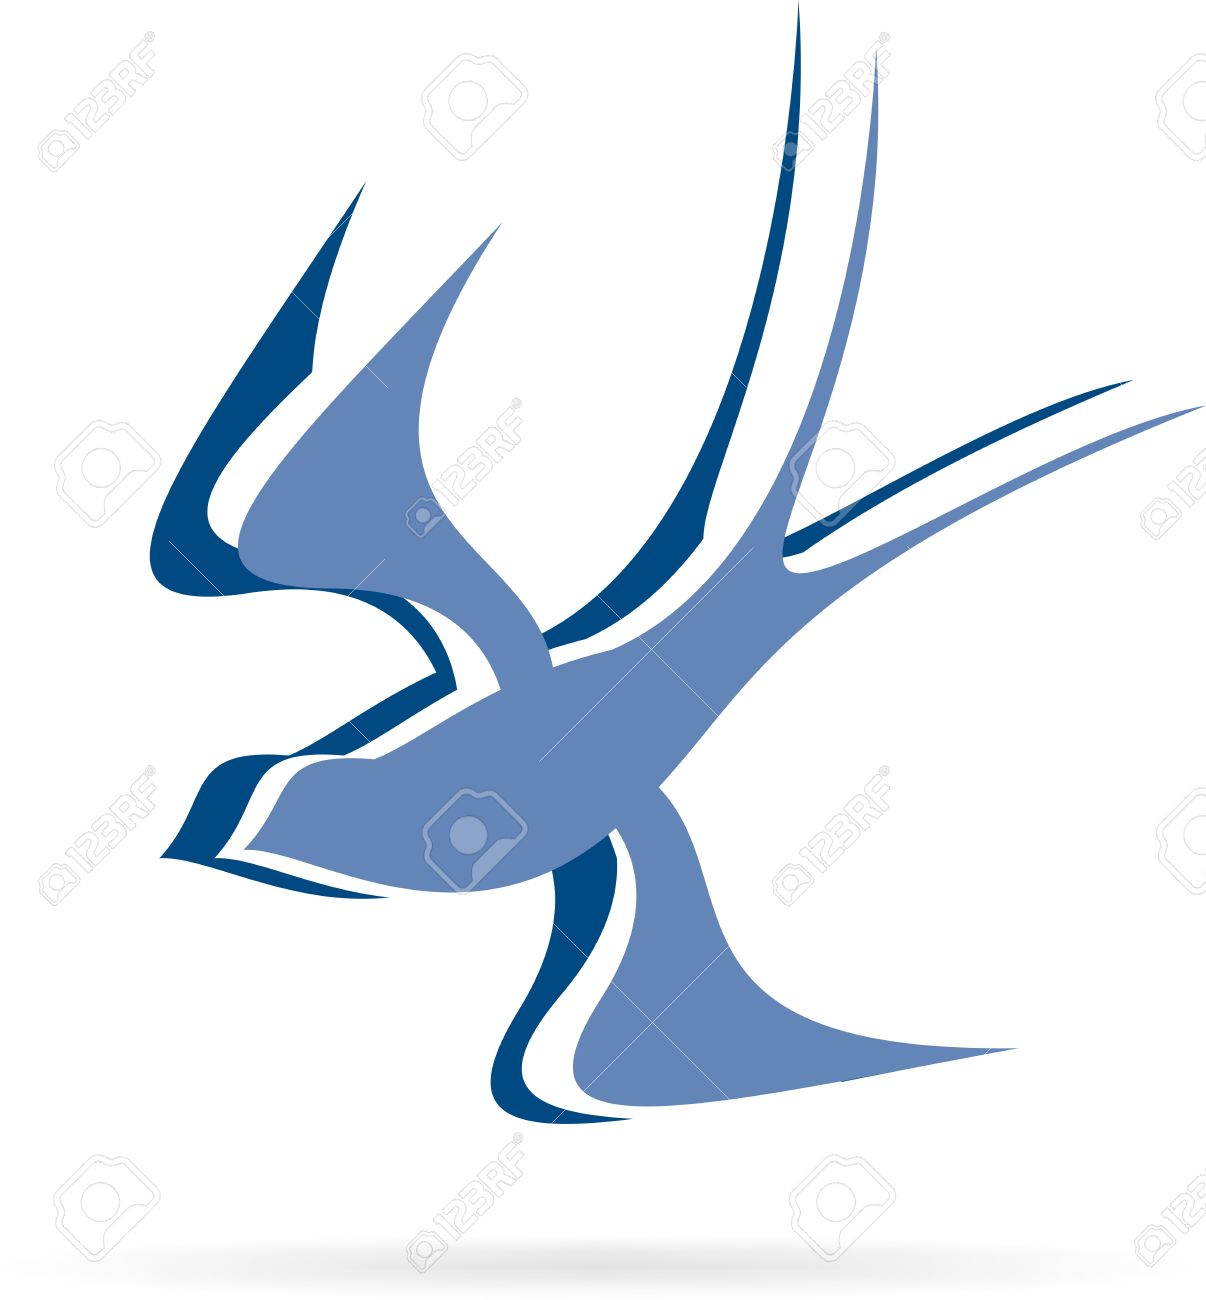 logo flying bird Stock Vector - 20191250